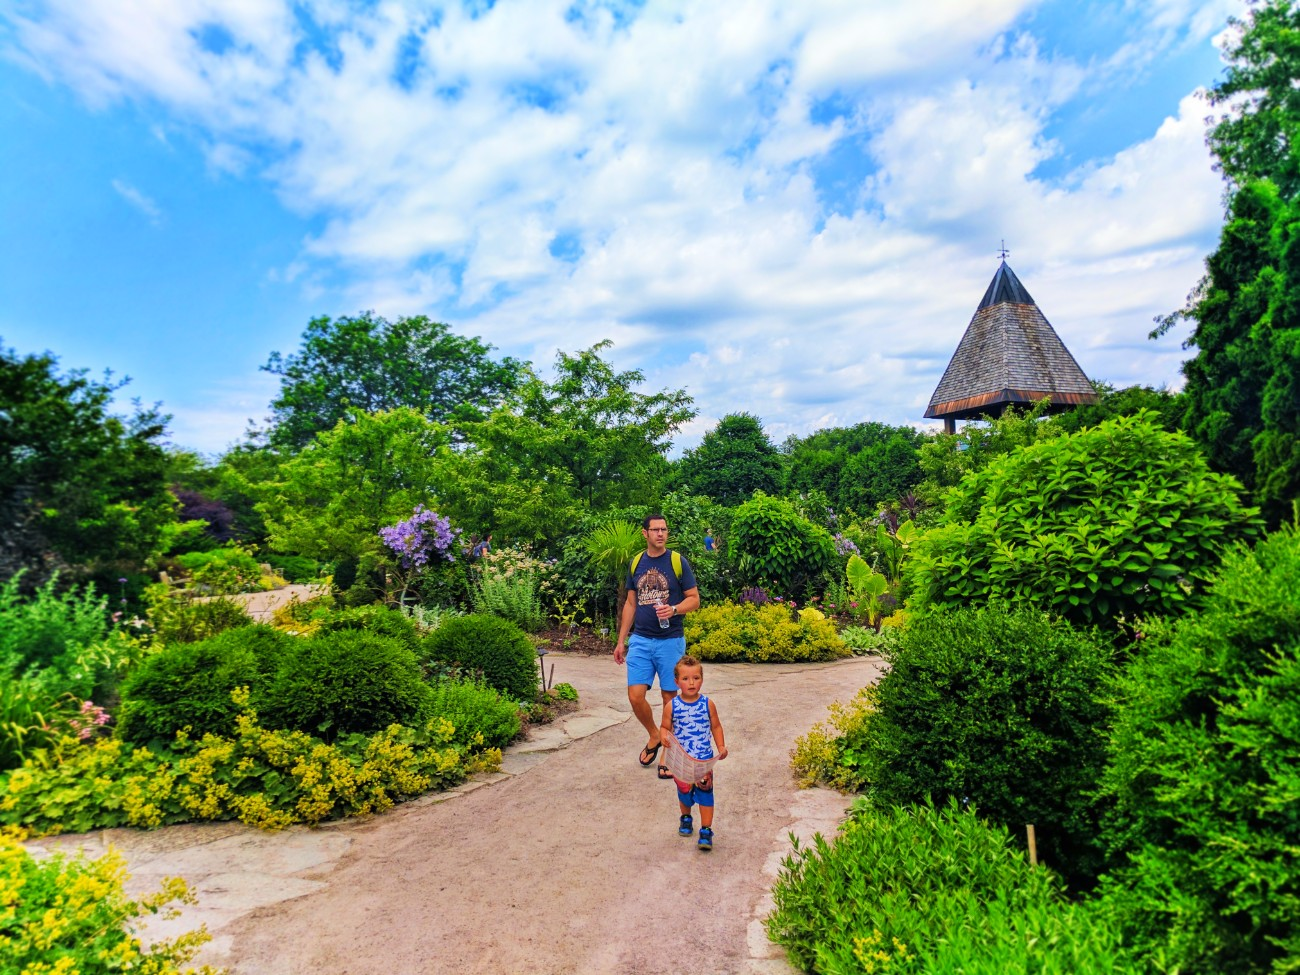 Taylor family at Olbrich Botanical Gardens Madison Wisconsin 4